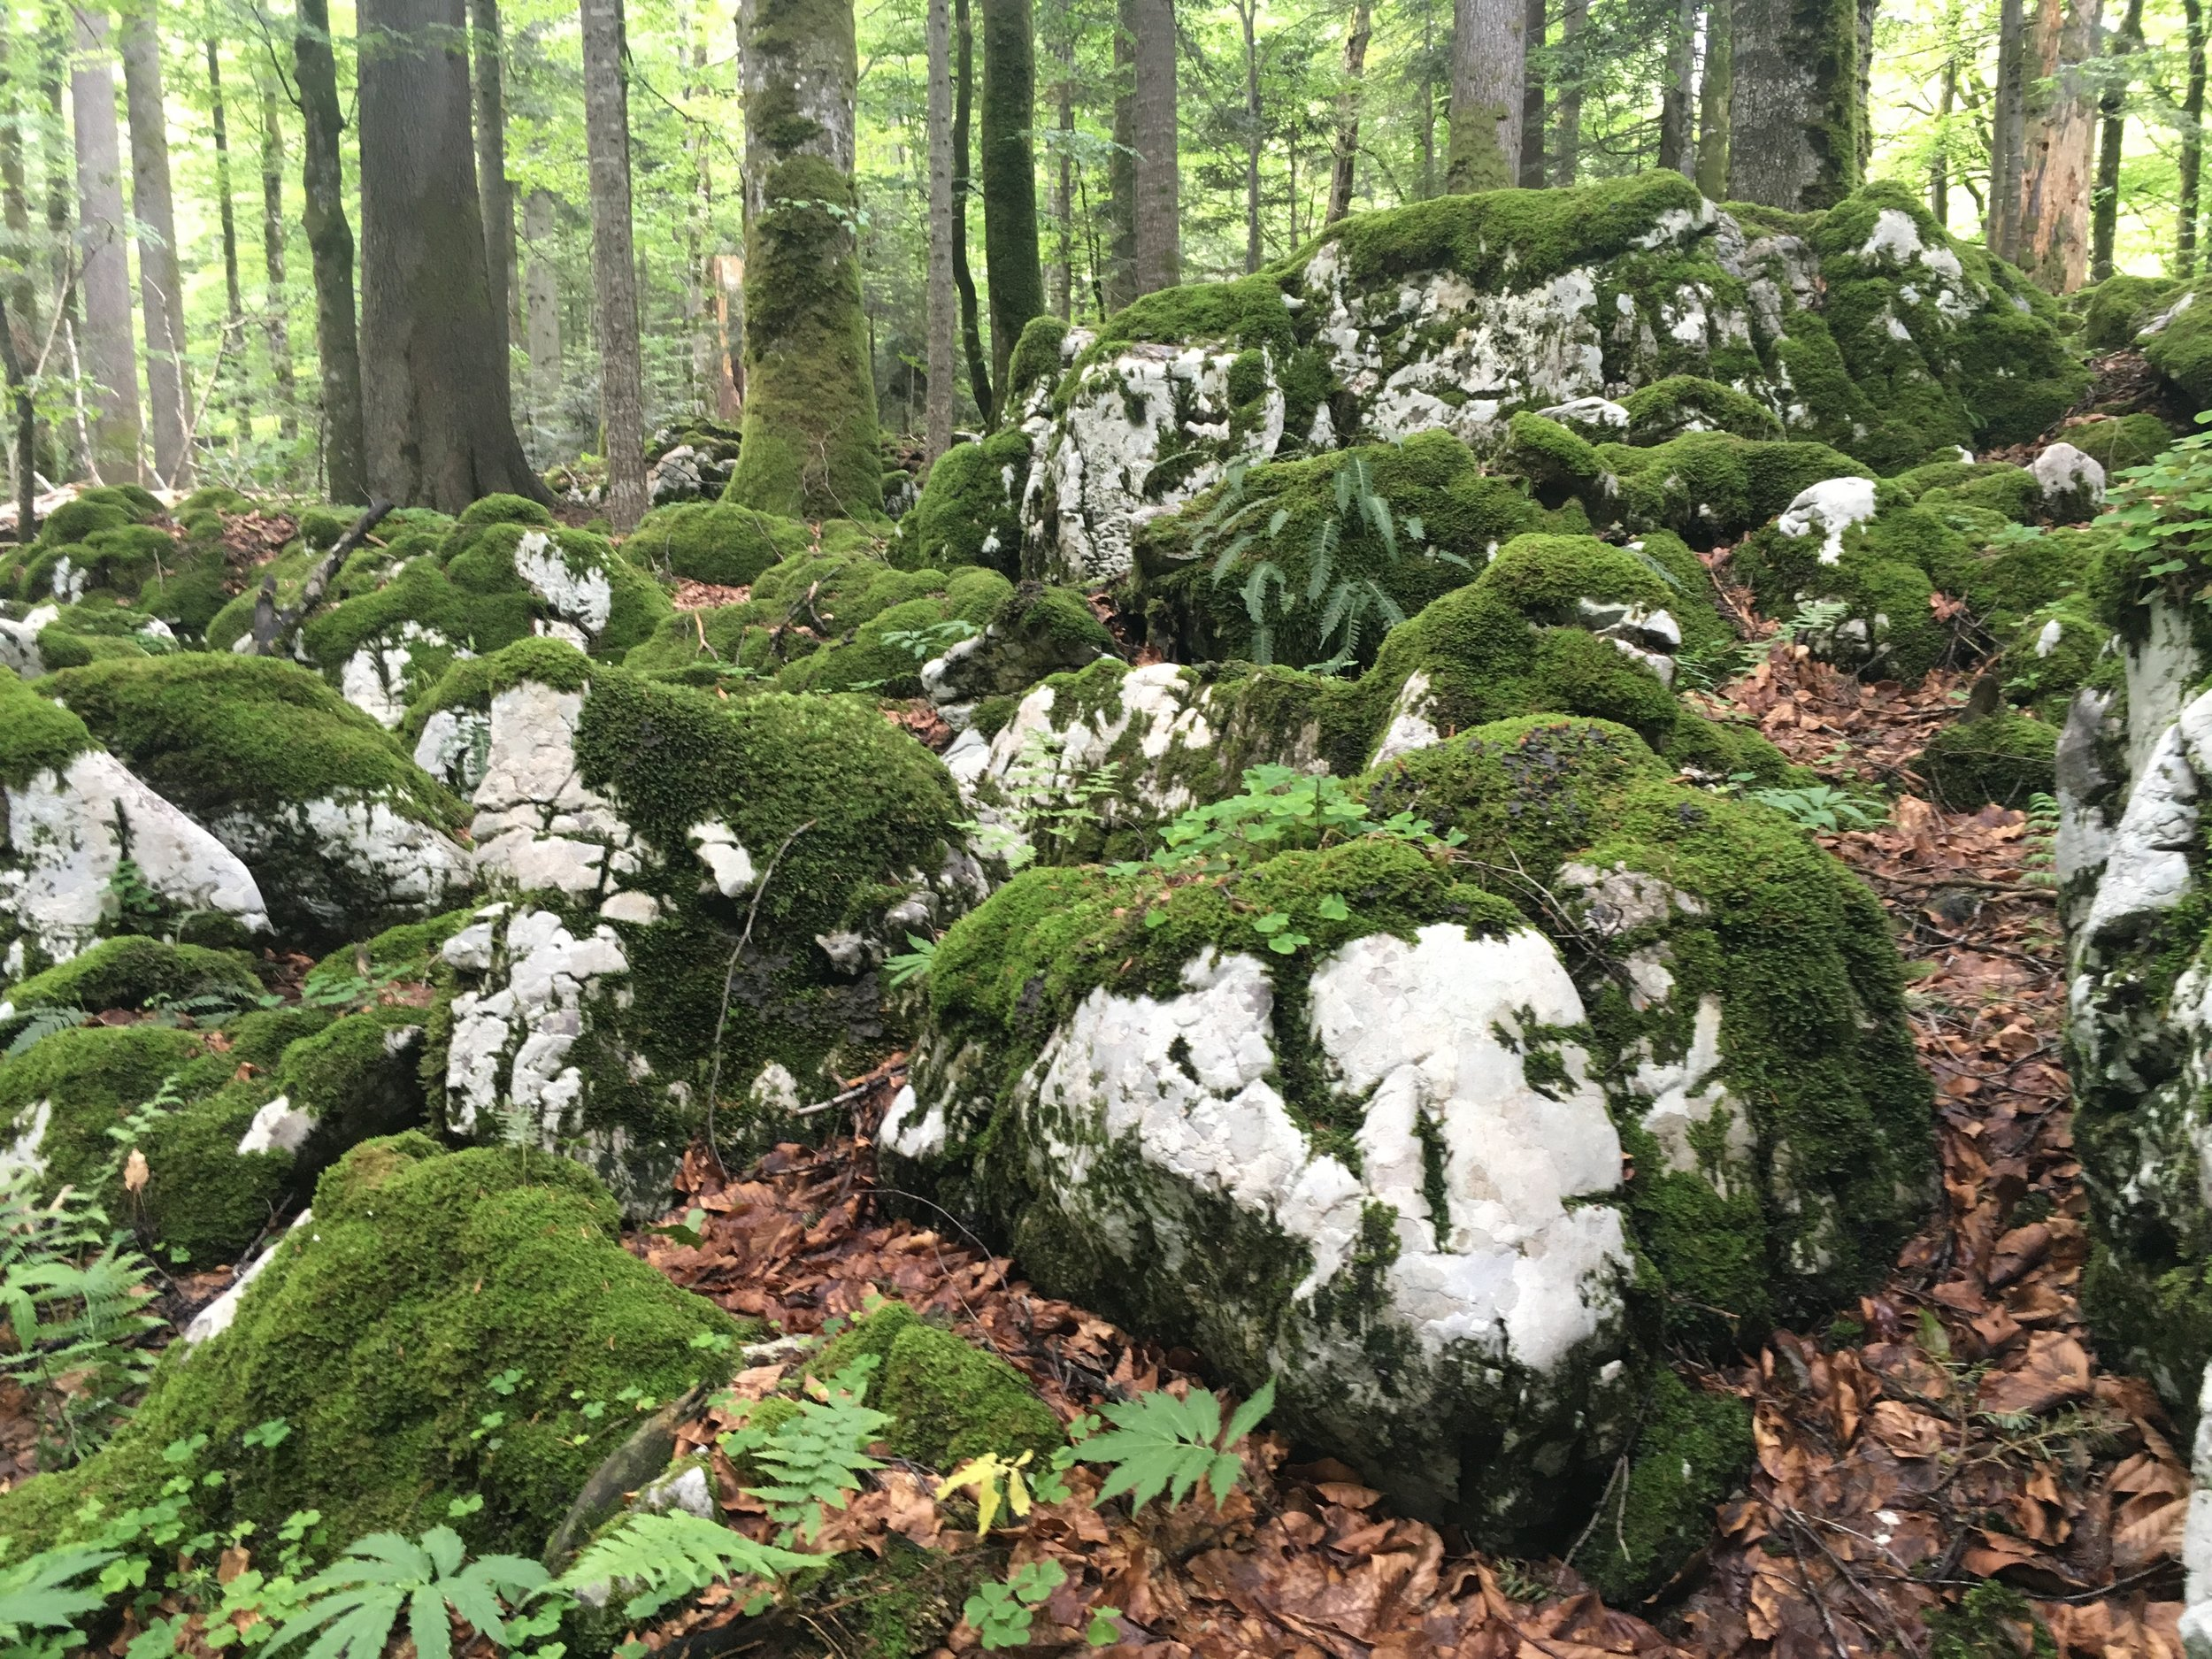 The moss-covered karst landscape supports the giant spruce and beech trees here near Plitvice lakes.